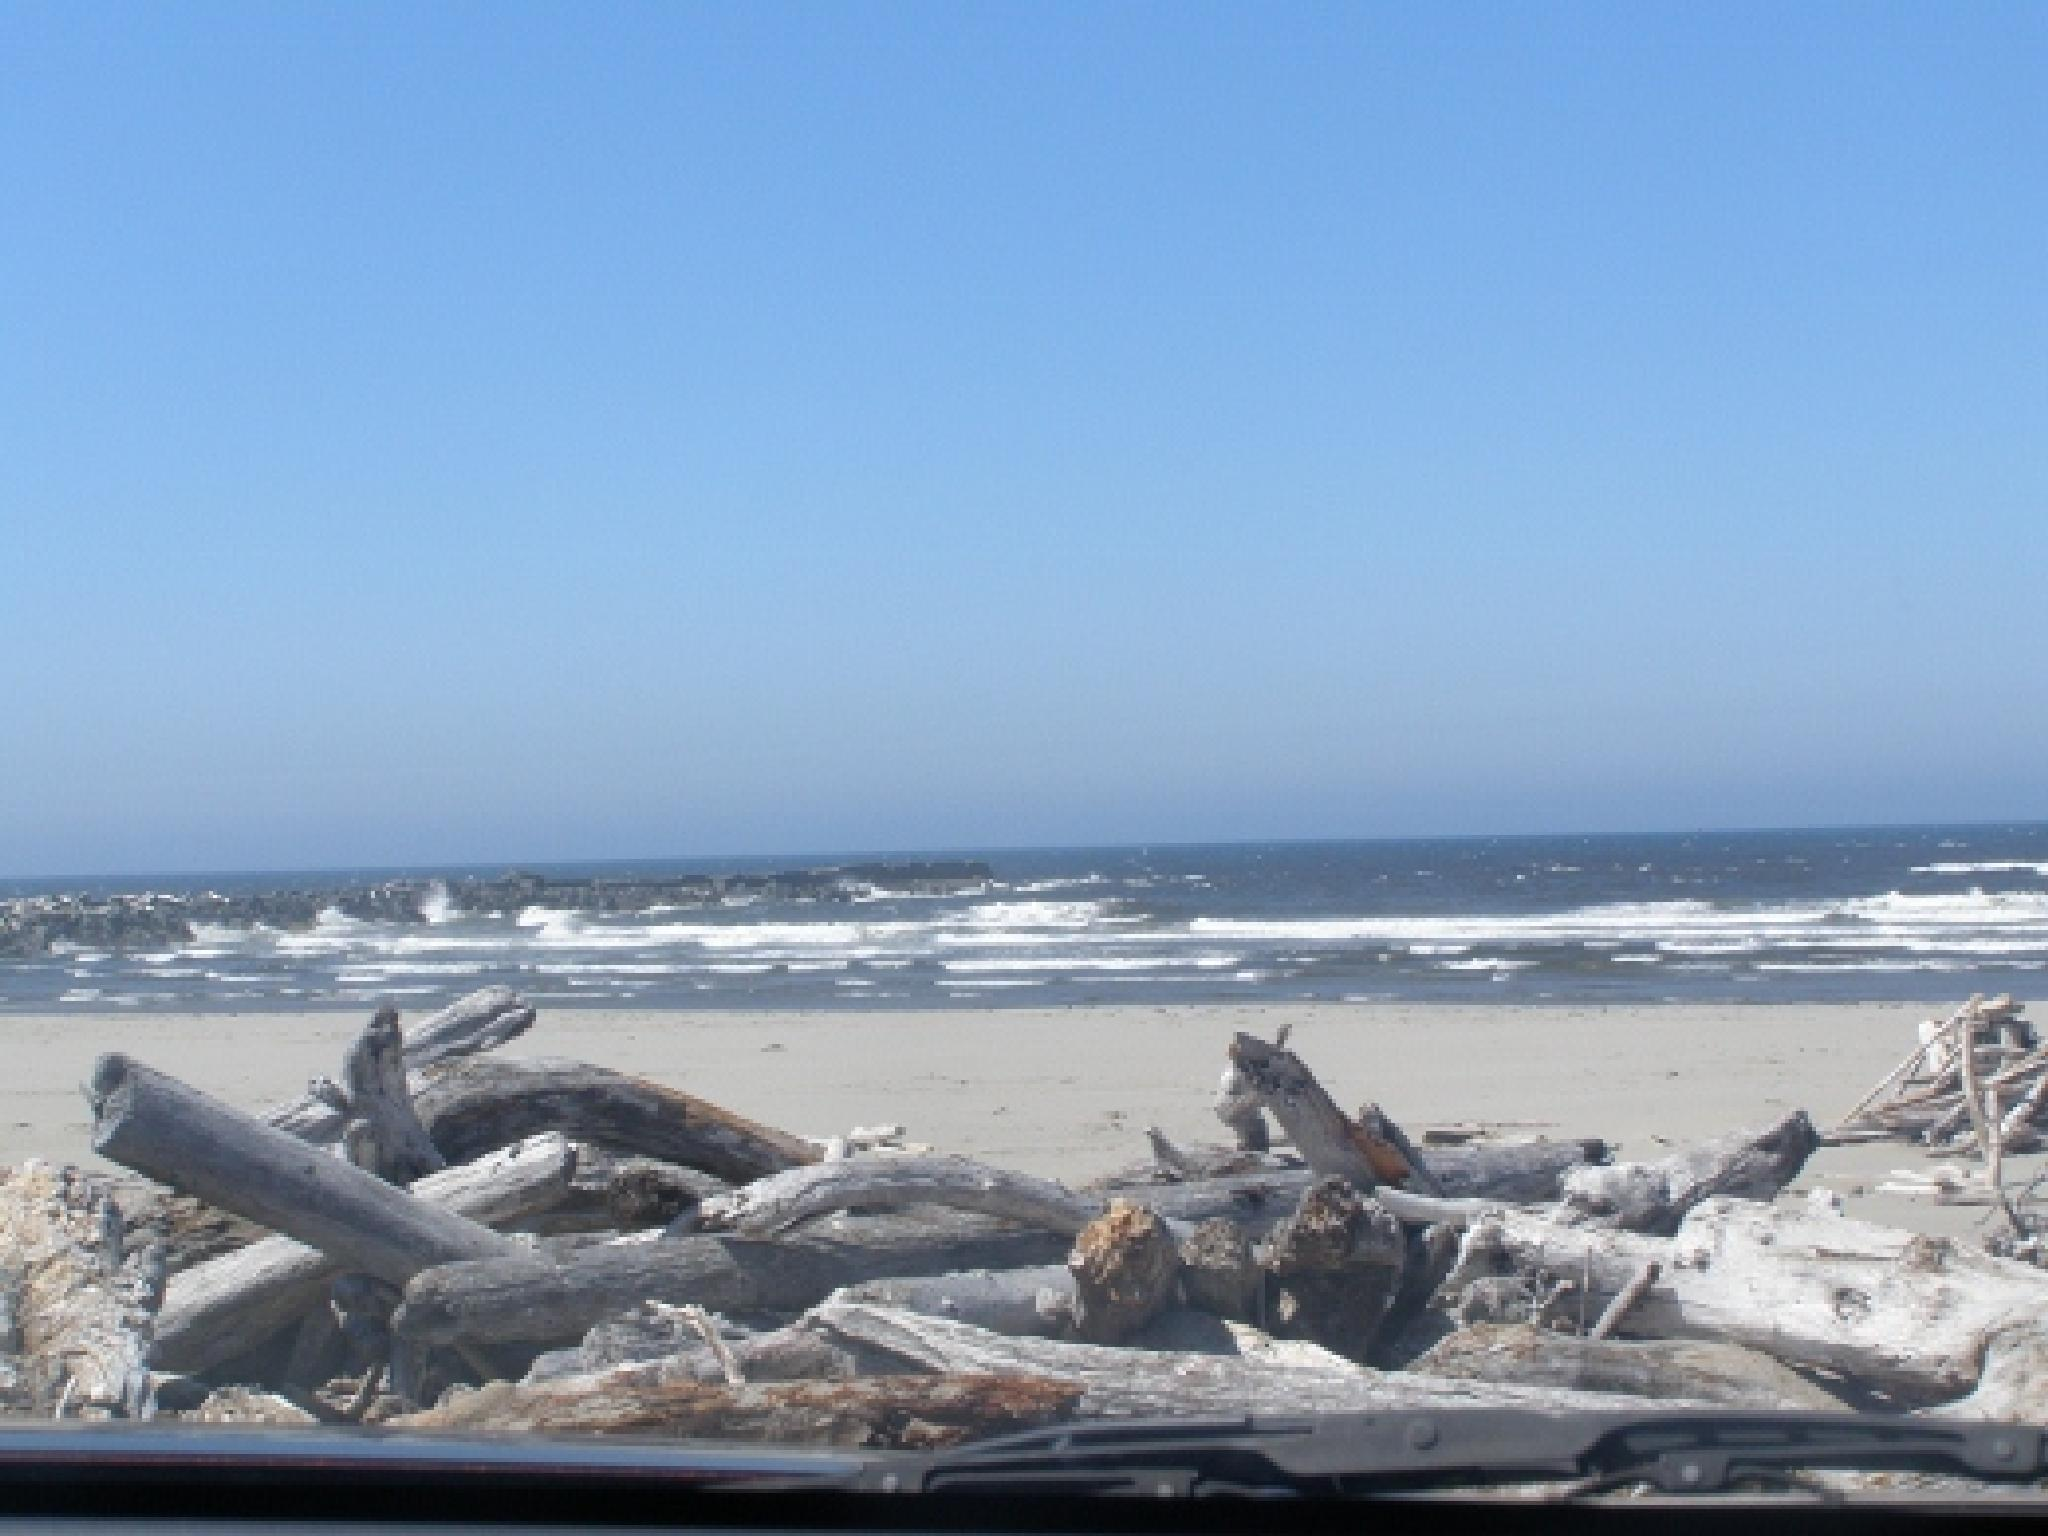 Seaside and Driftwood by Daggerbones